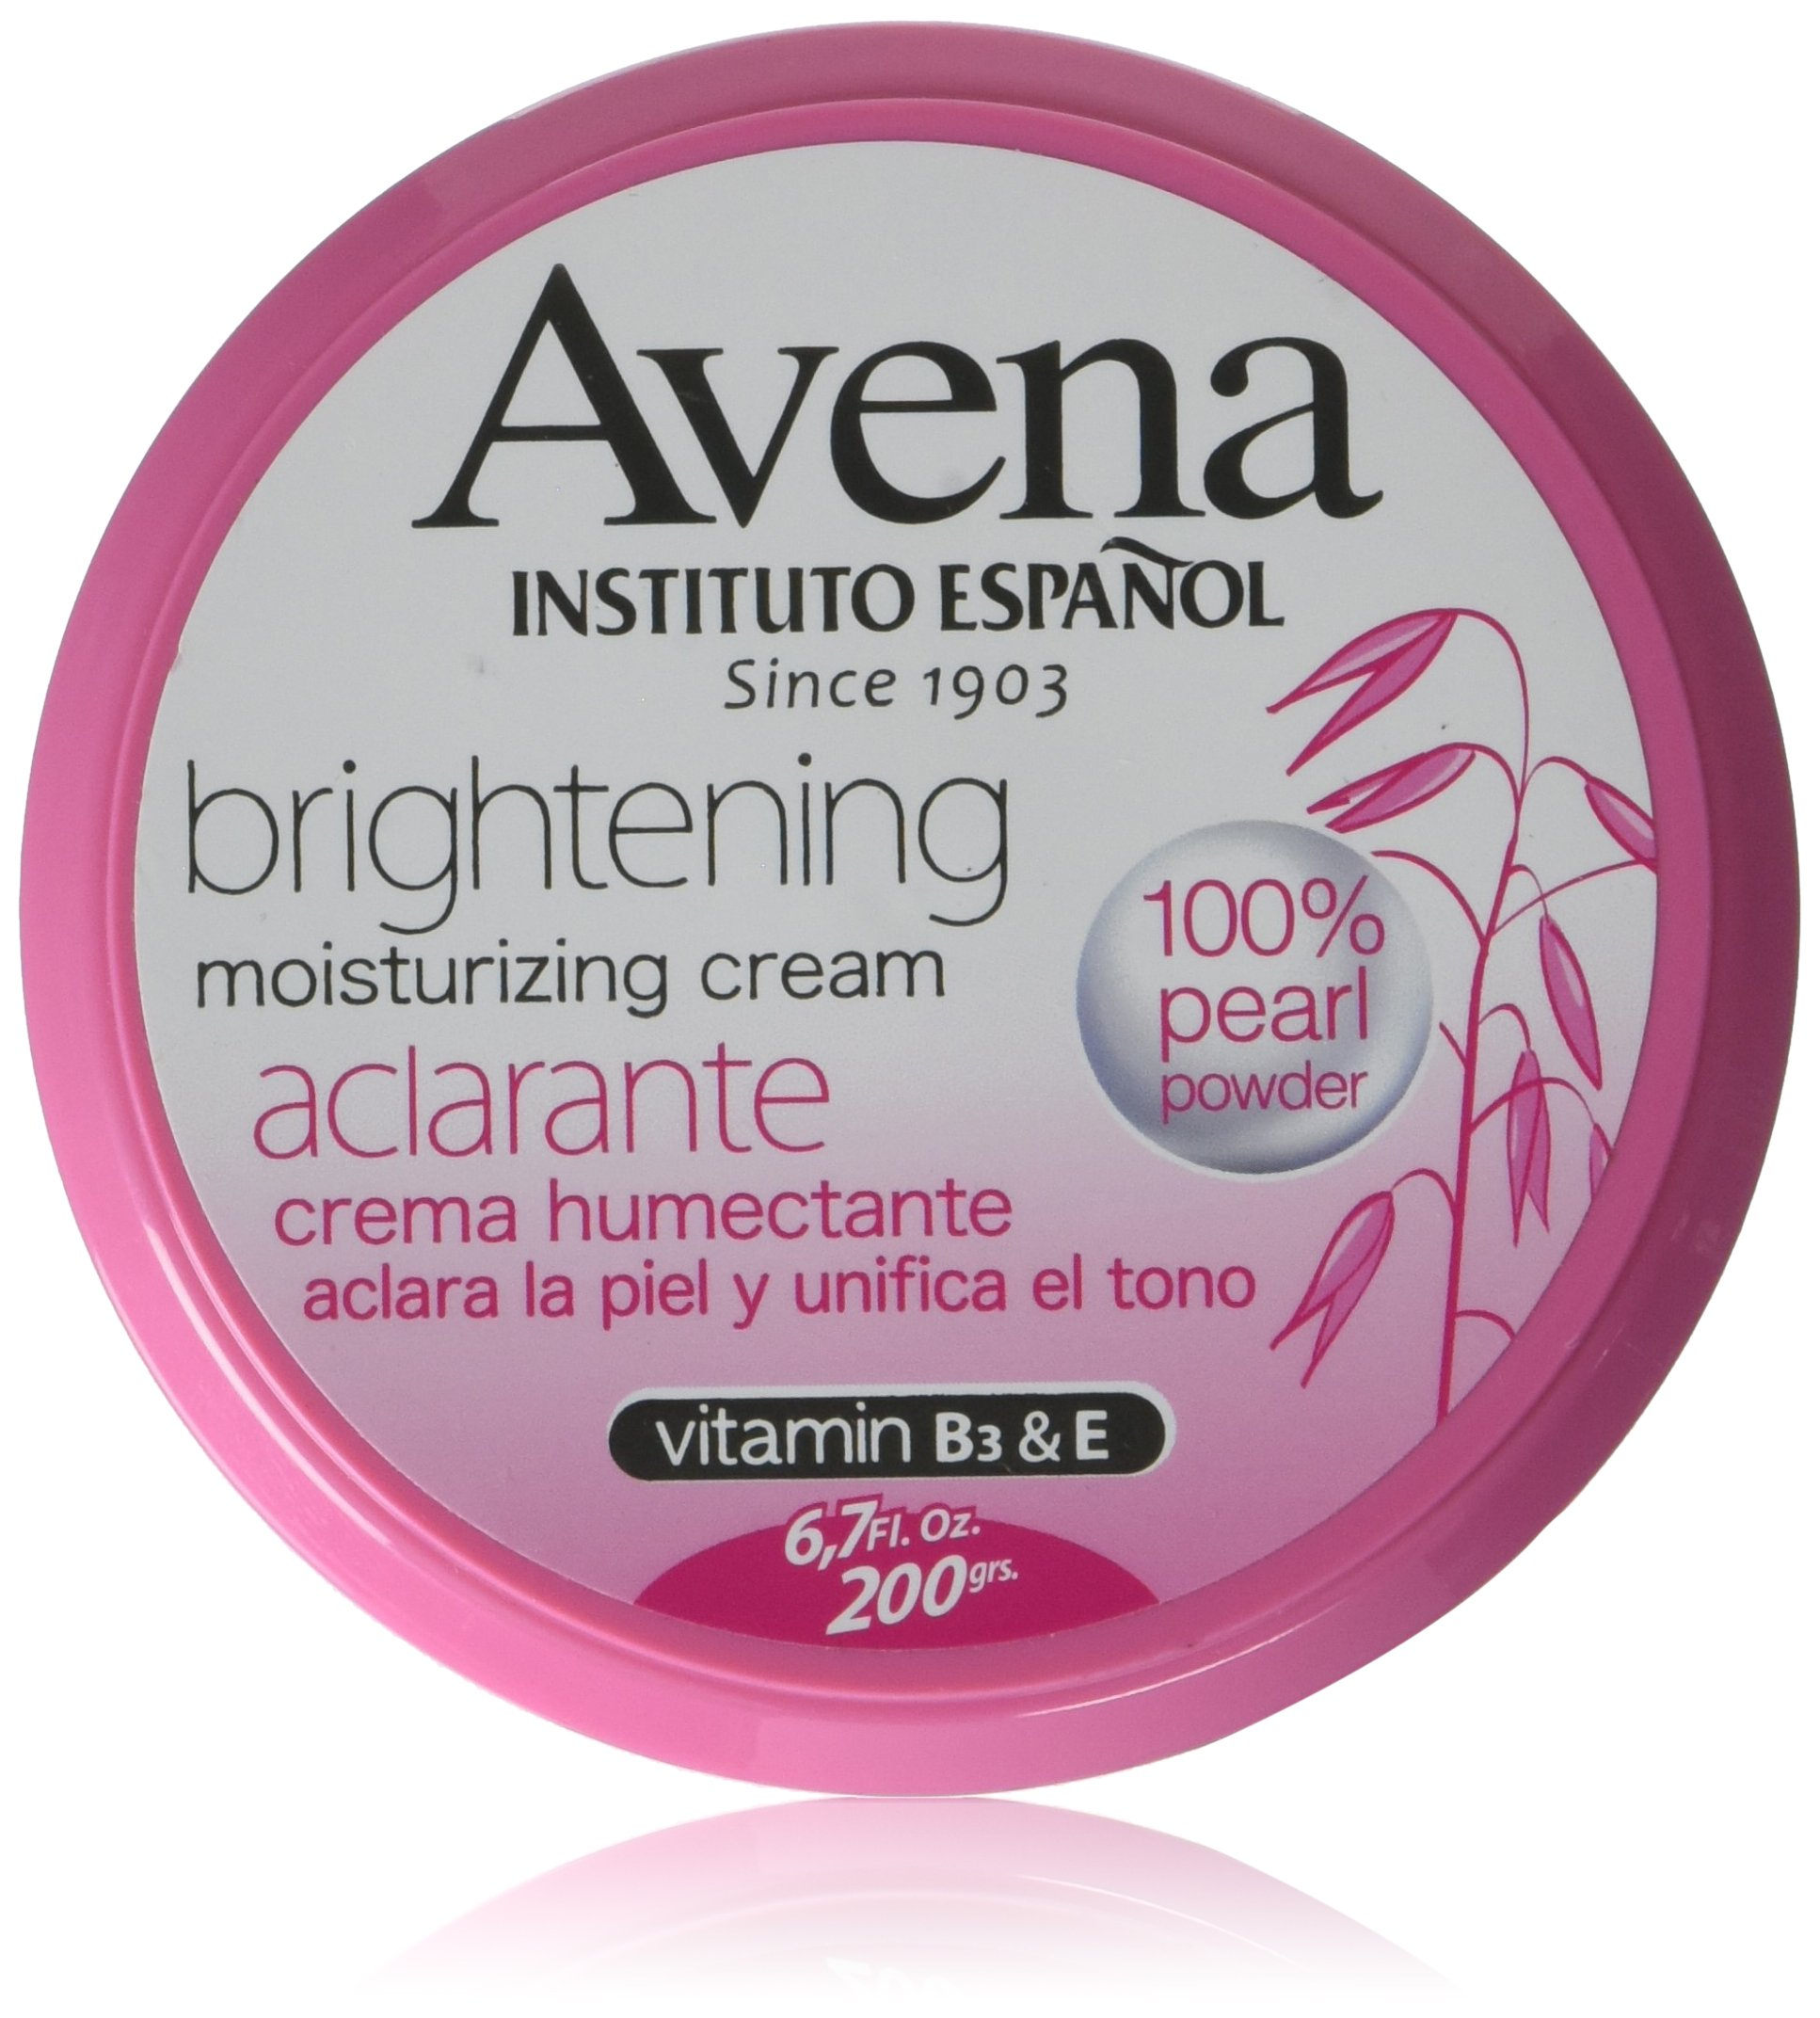 Avena Instituto Español Brightening moisturizing cream 6.7 oz.